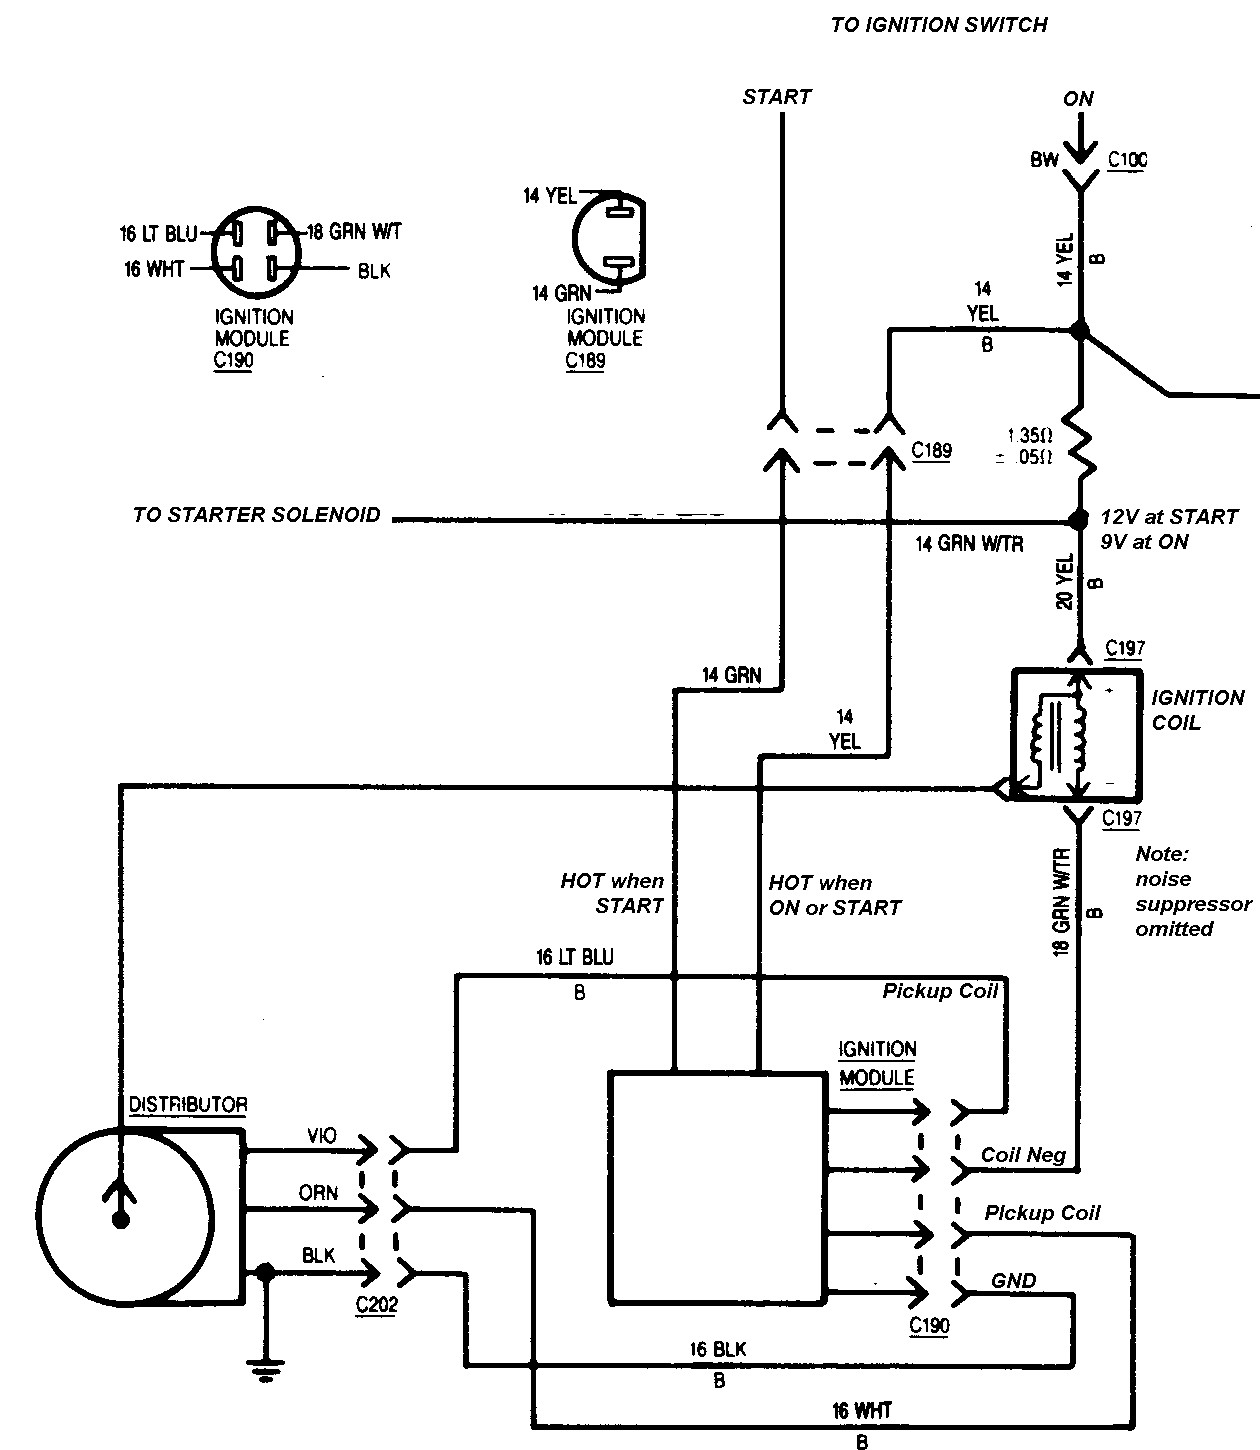 Oldsmobile Alero Ignition Module Wiring Diagram